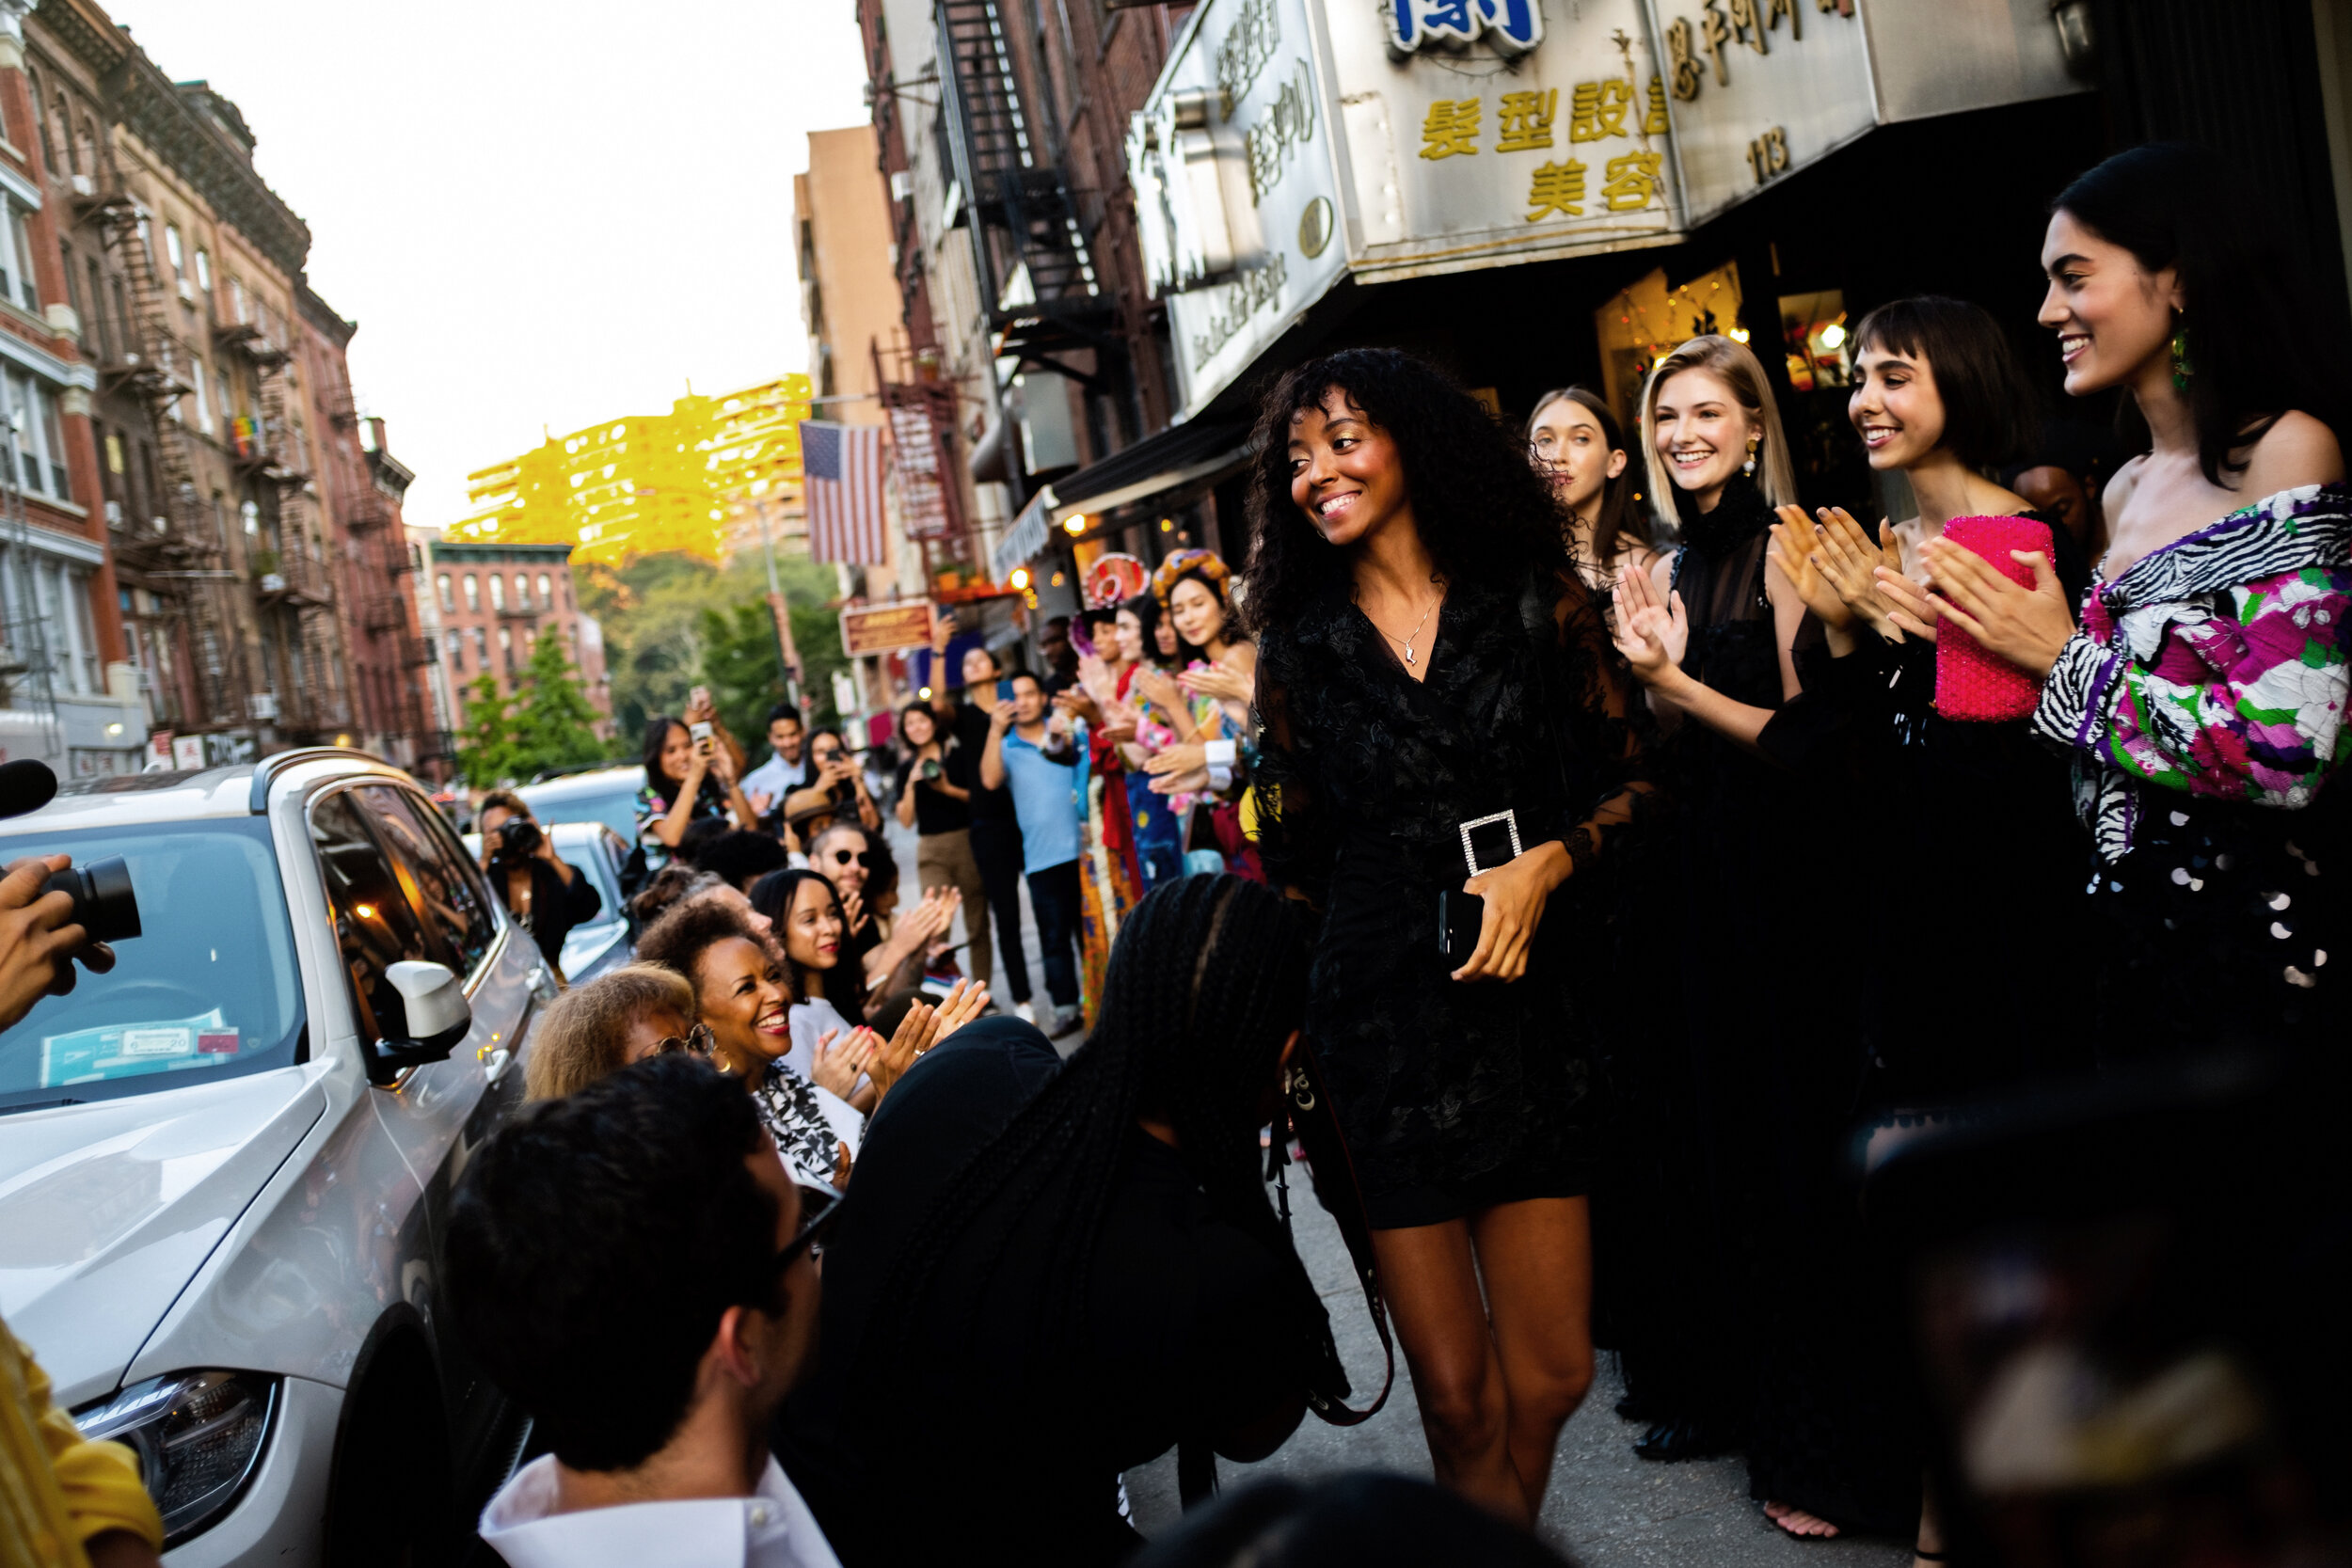 Vogue Magazine - This Sidewalk Fashion Show Brought Caribbean Designers to Downtown New York